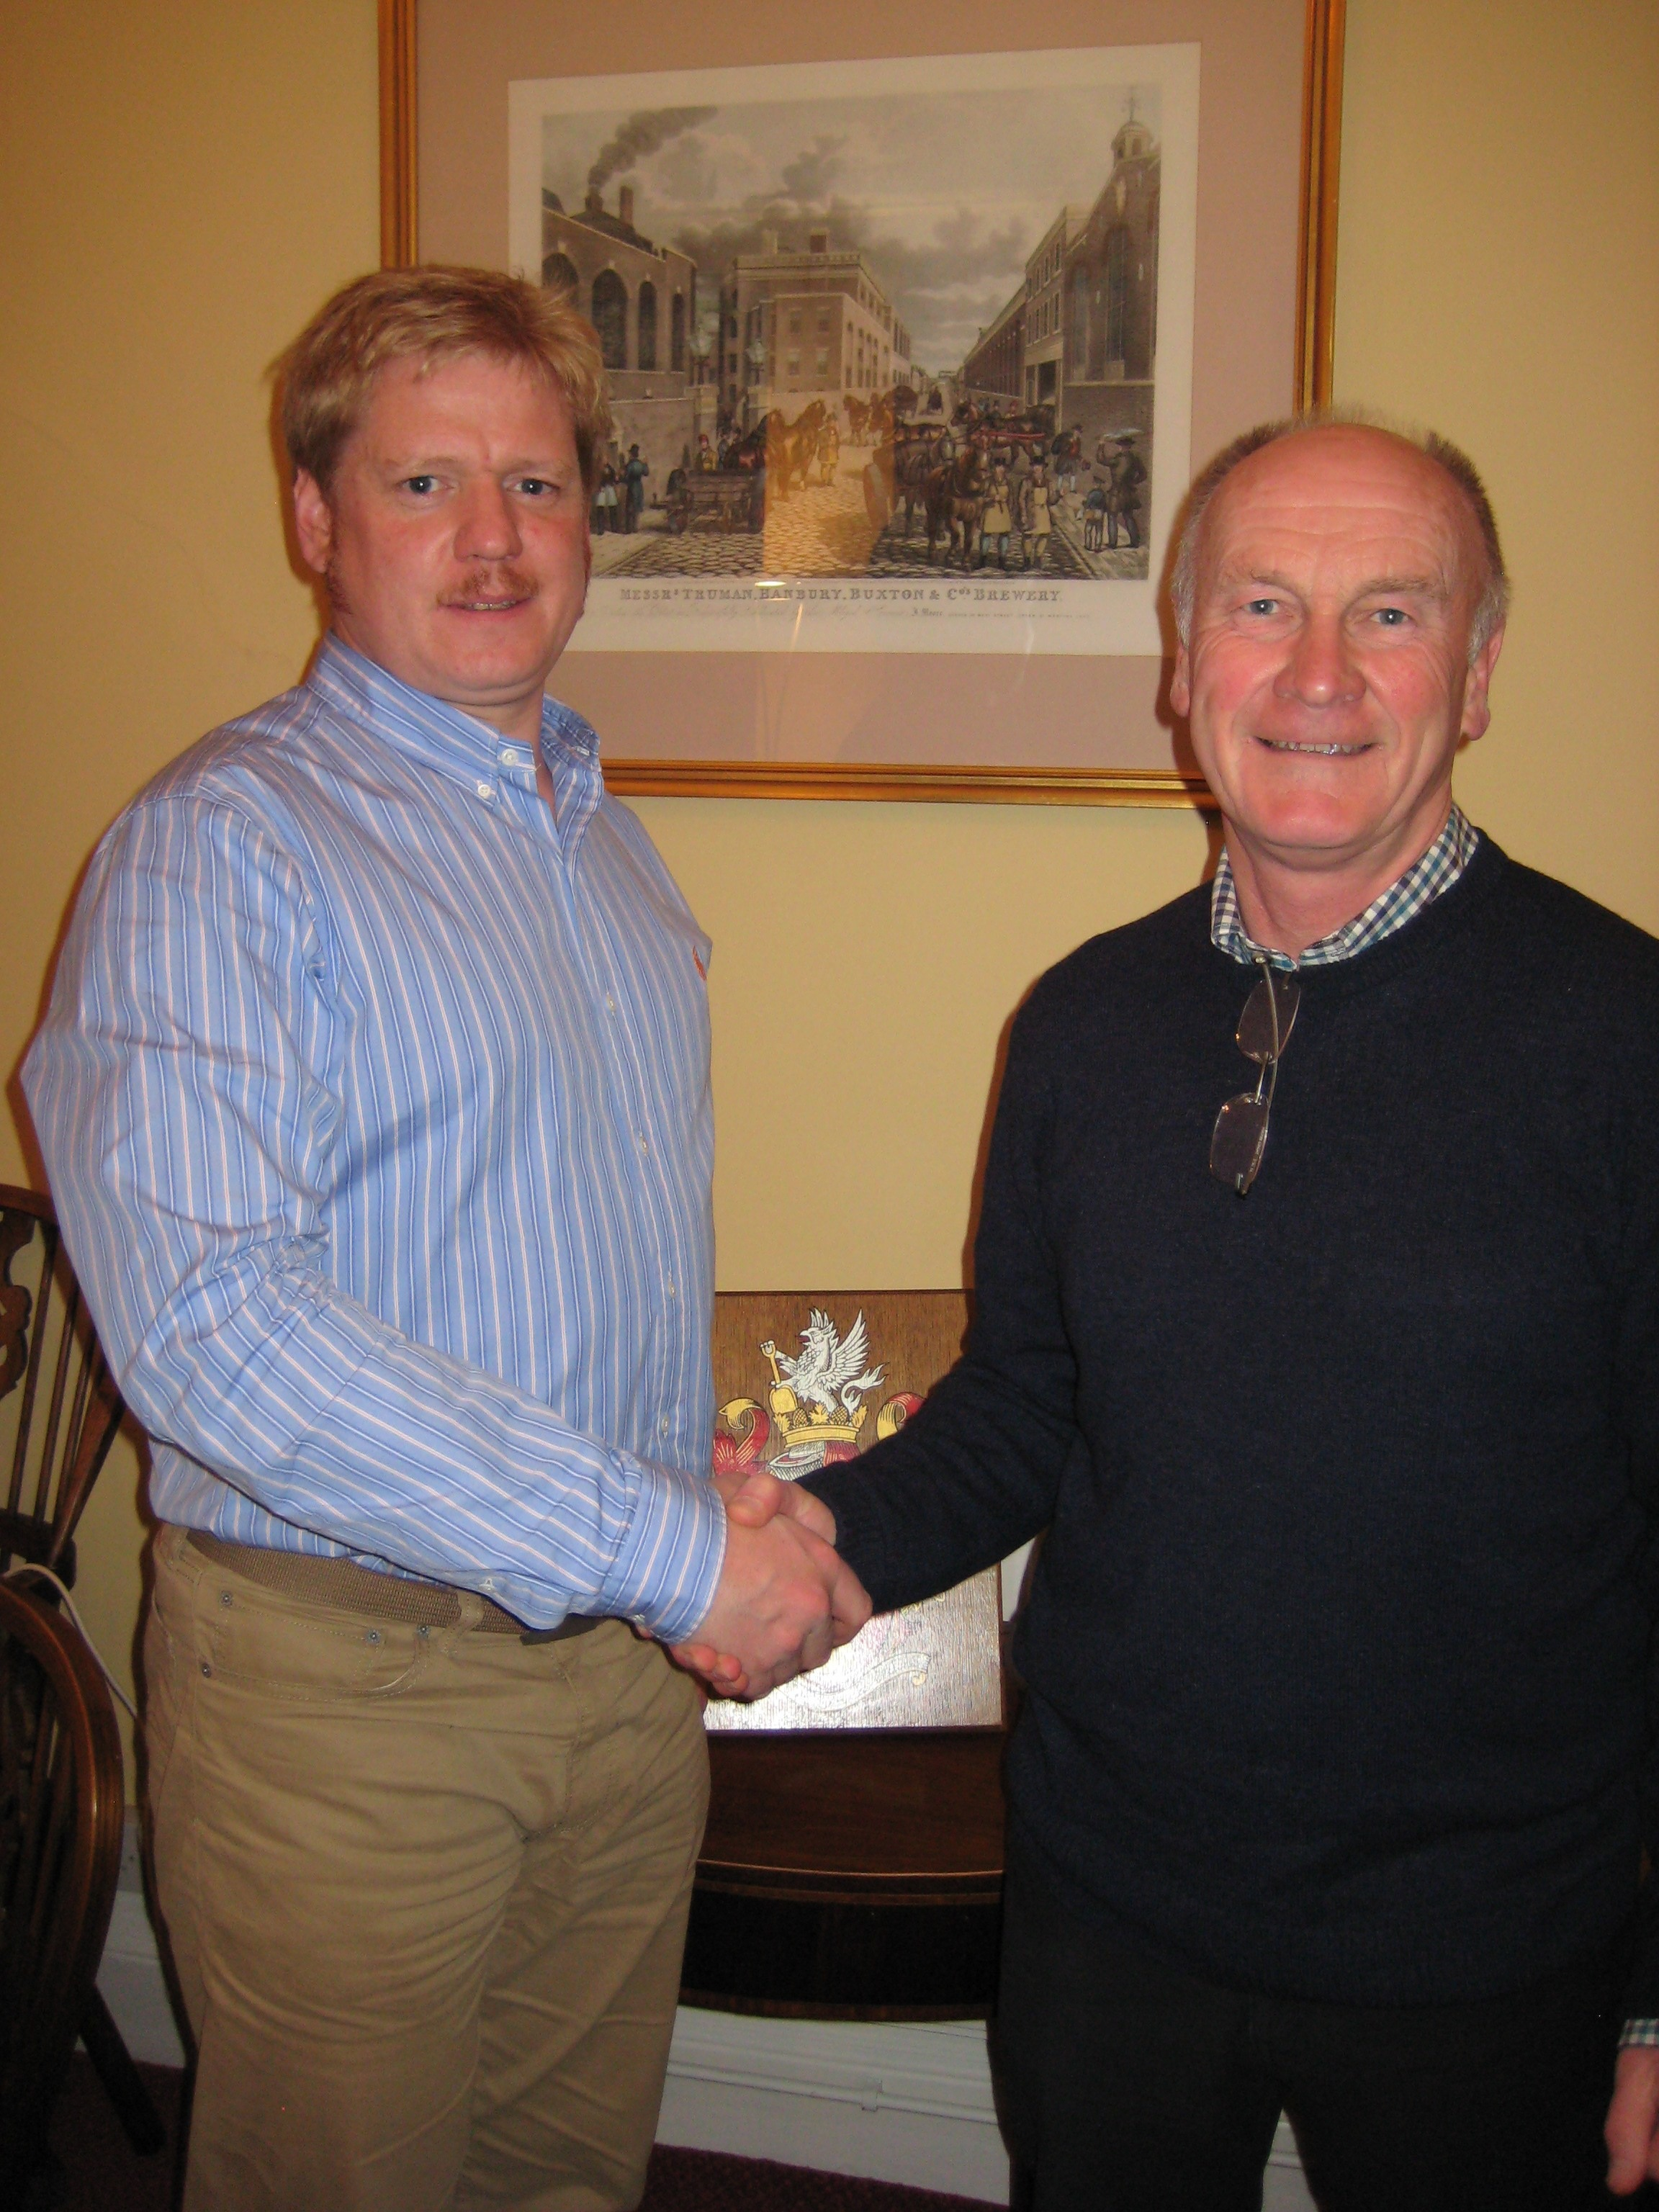 James Clarke, Oxford, England<br>Accredited: 27th November 2012